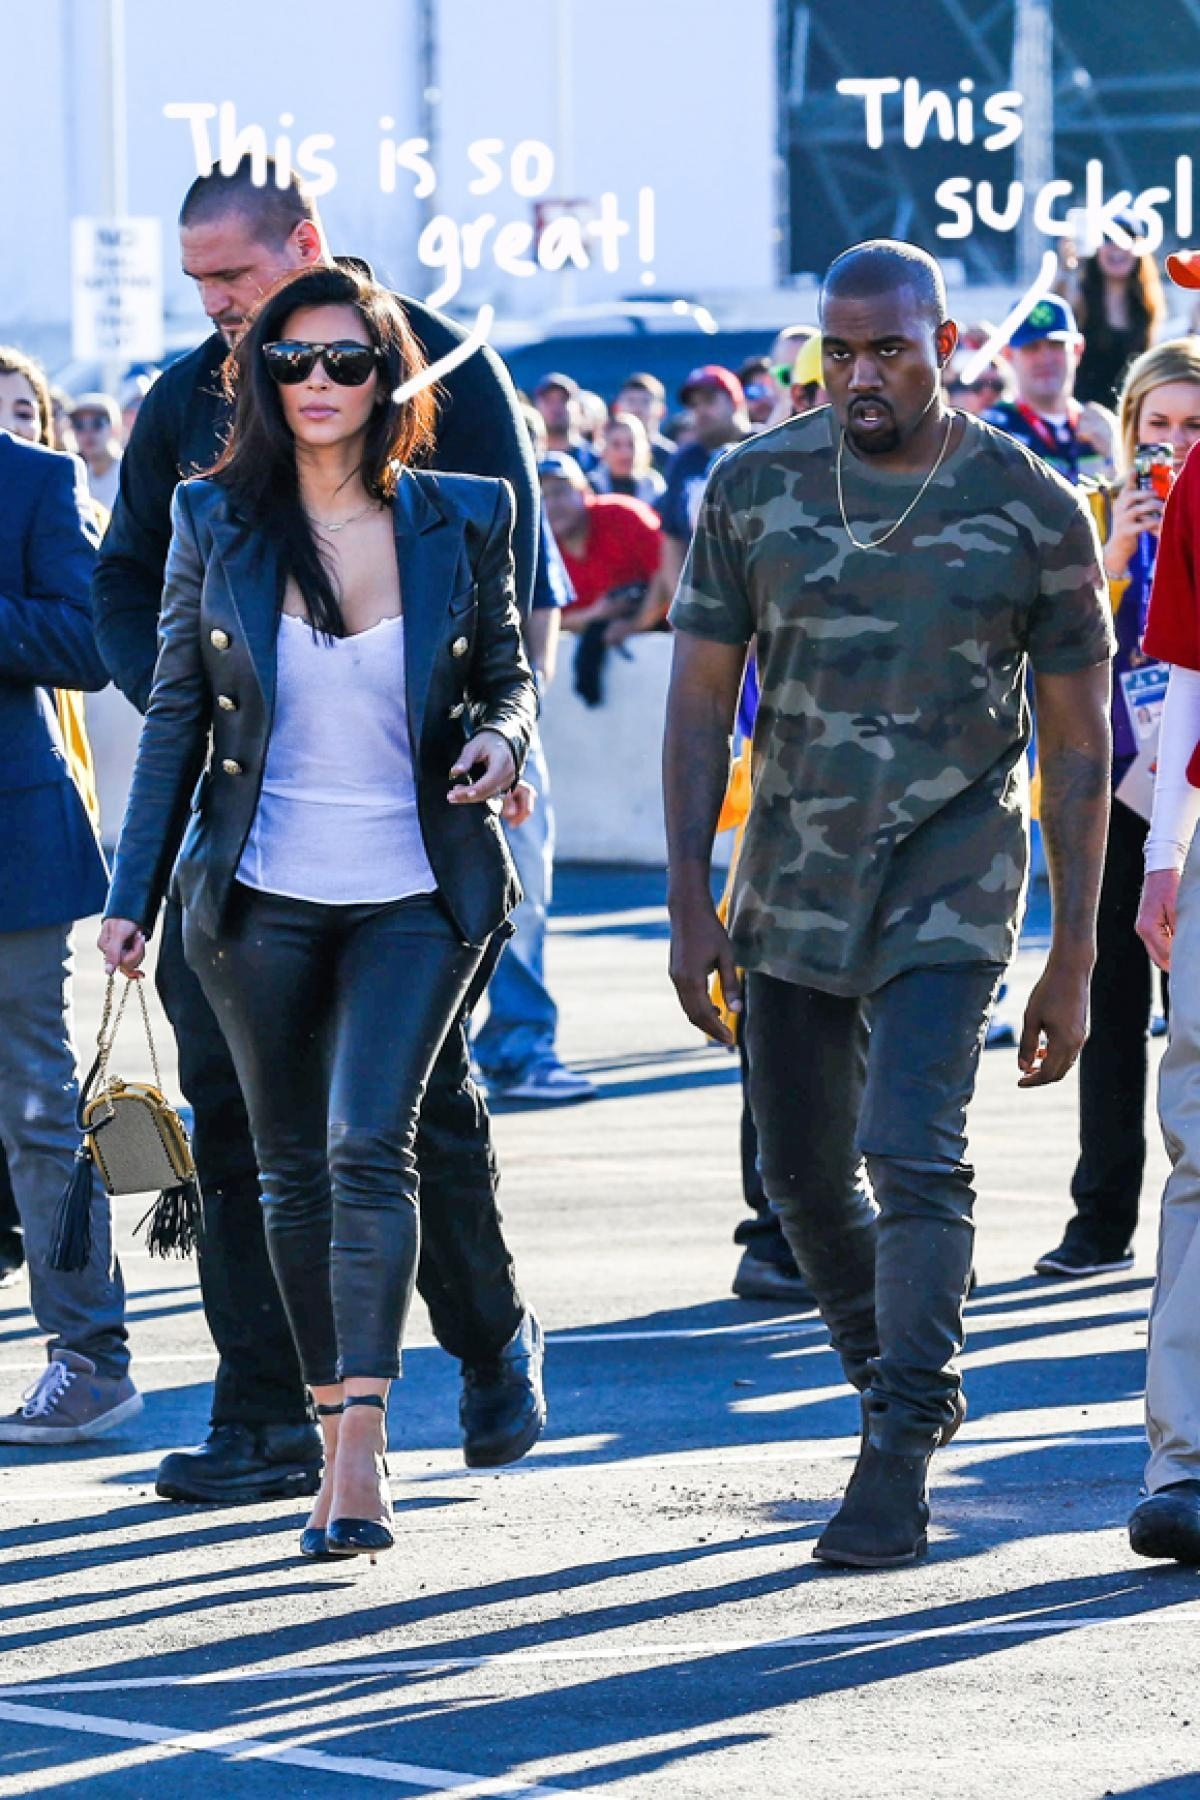 Kanye West Looks Pissed While Kim Kardashian West Wears A intended for Kanye West Super Bowl